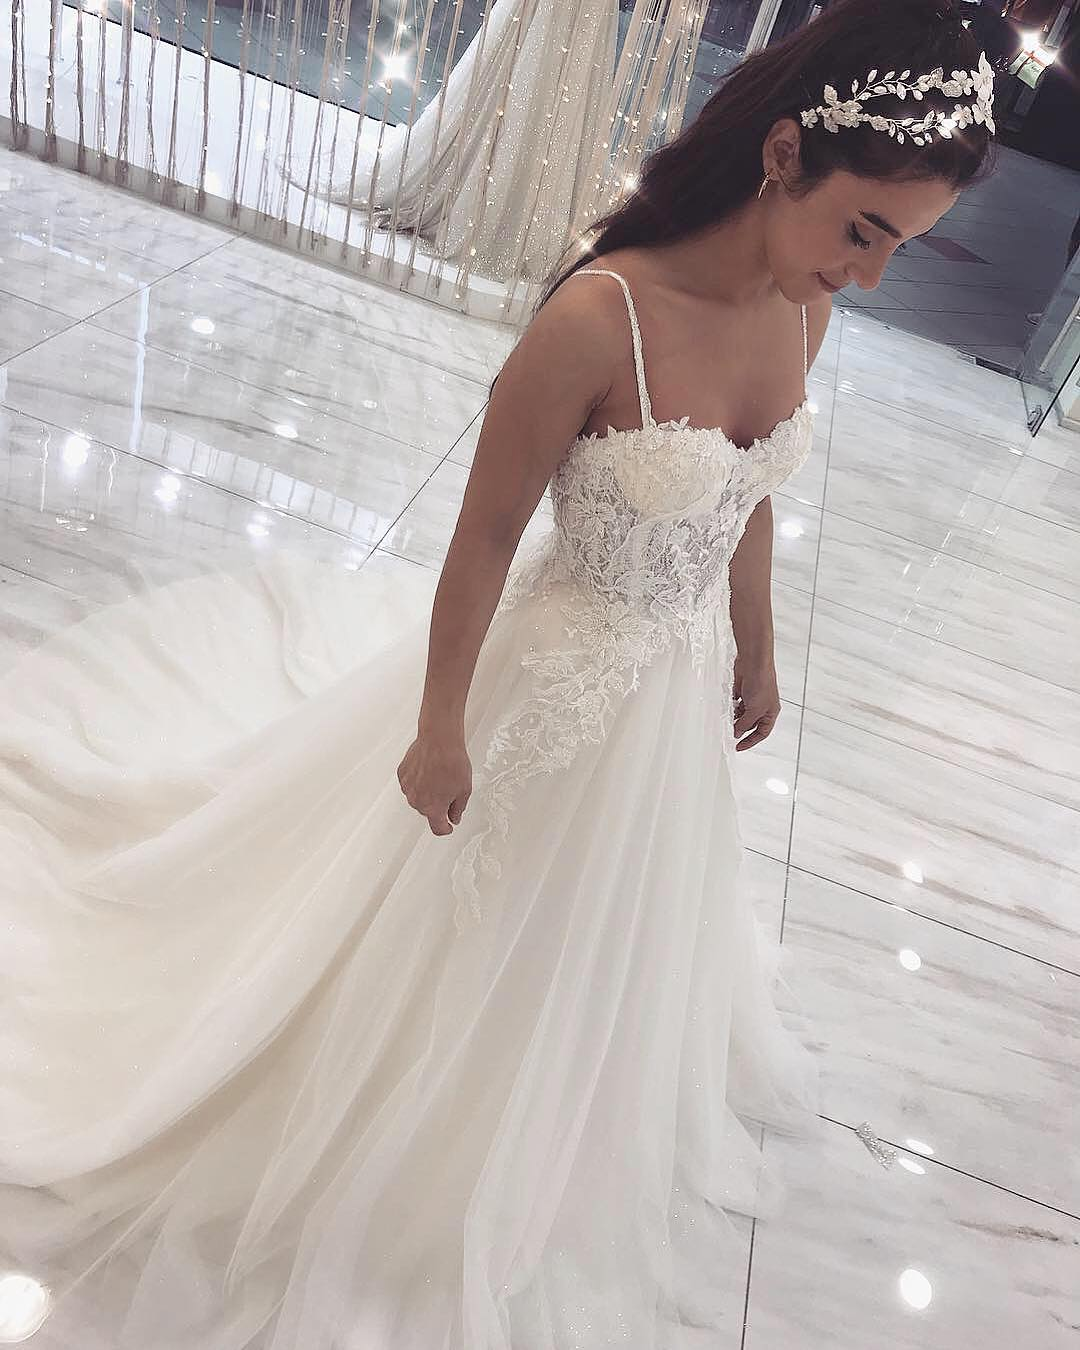 b9c56b75cd15c Sexy Ivory Tulle A Line Wedding Dress Lace Appliques Court Train Spaghetti  Straps Sweetheart Neck Bride